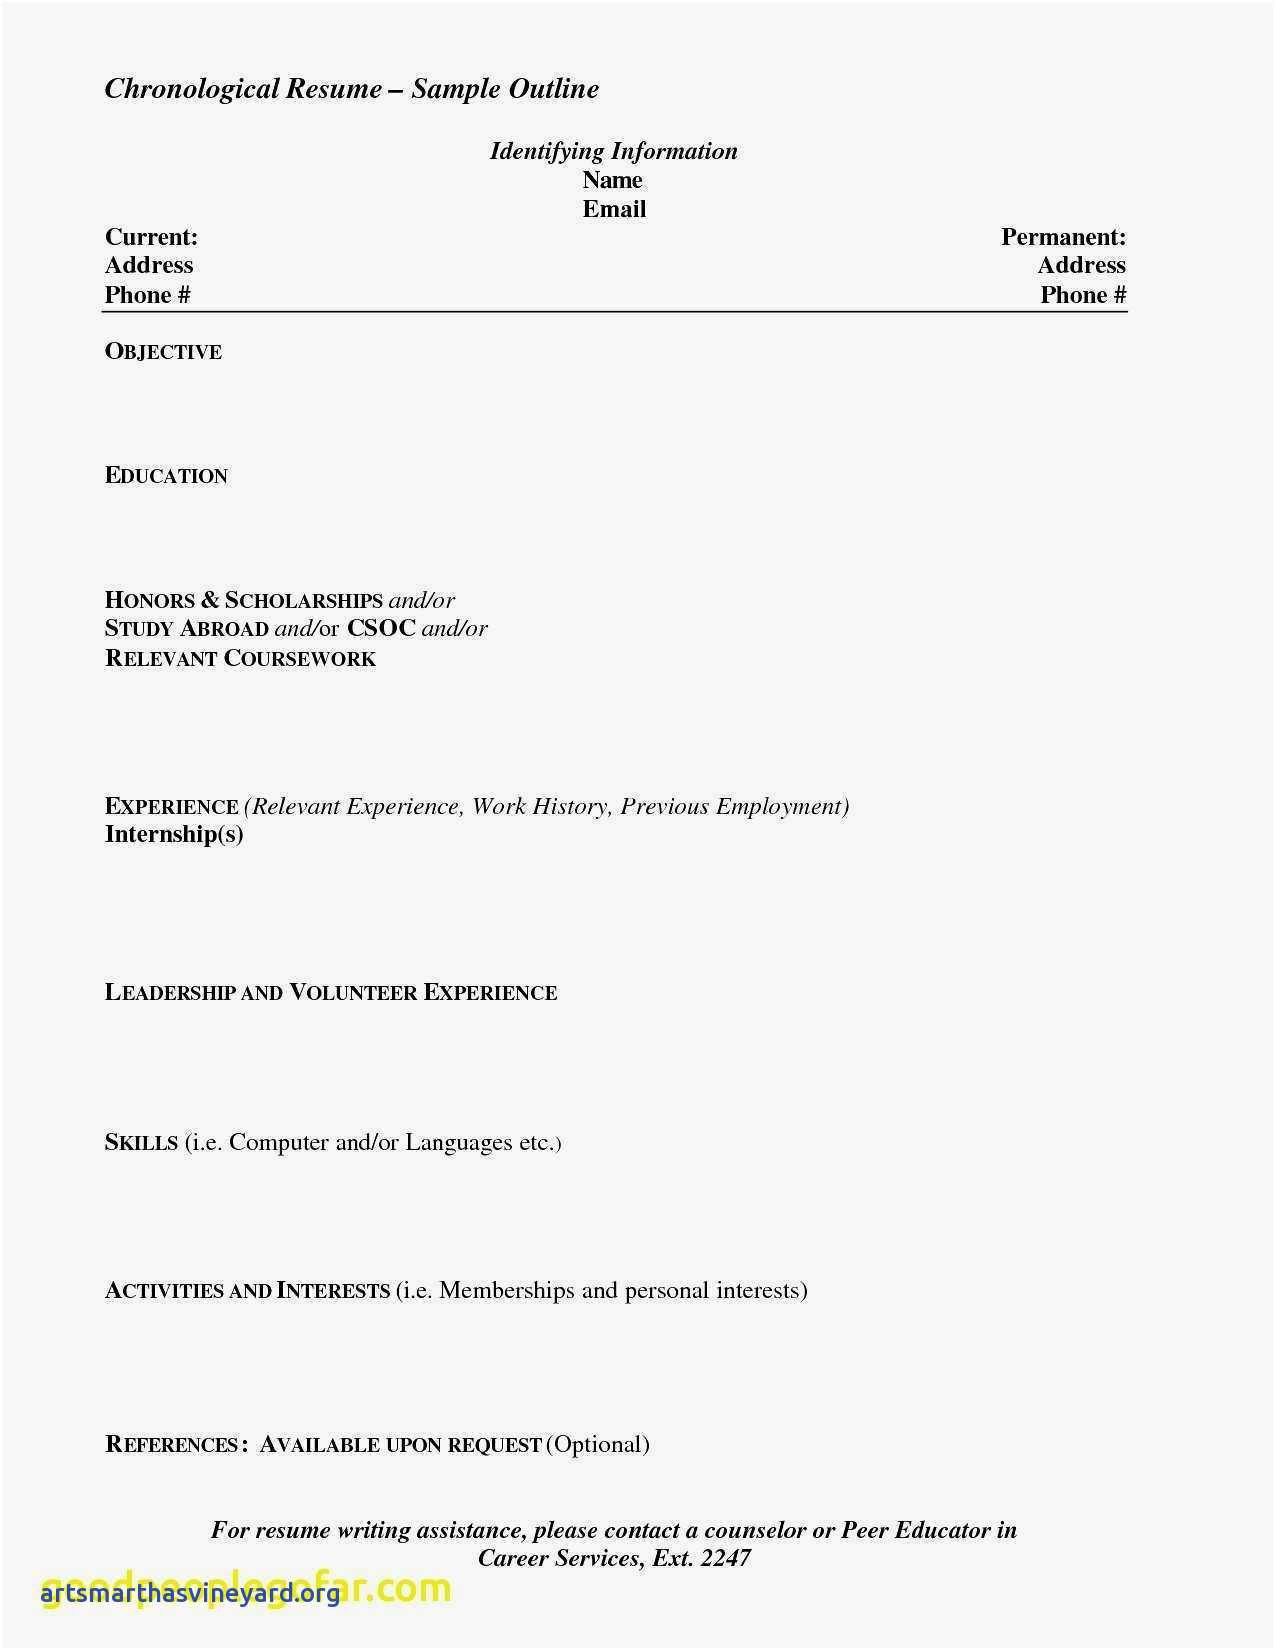 Scholarship Resume Template - Resume Templates High School Students No Experience Simple Unique